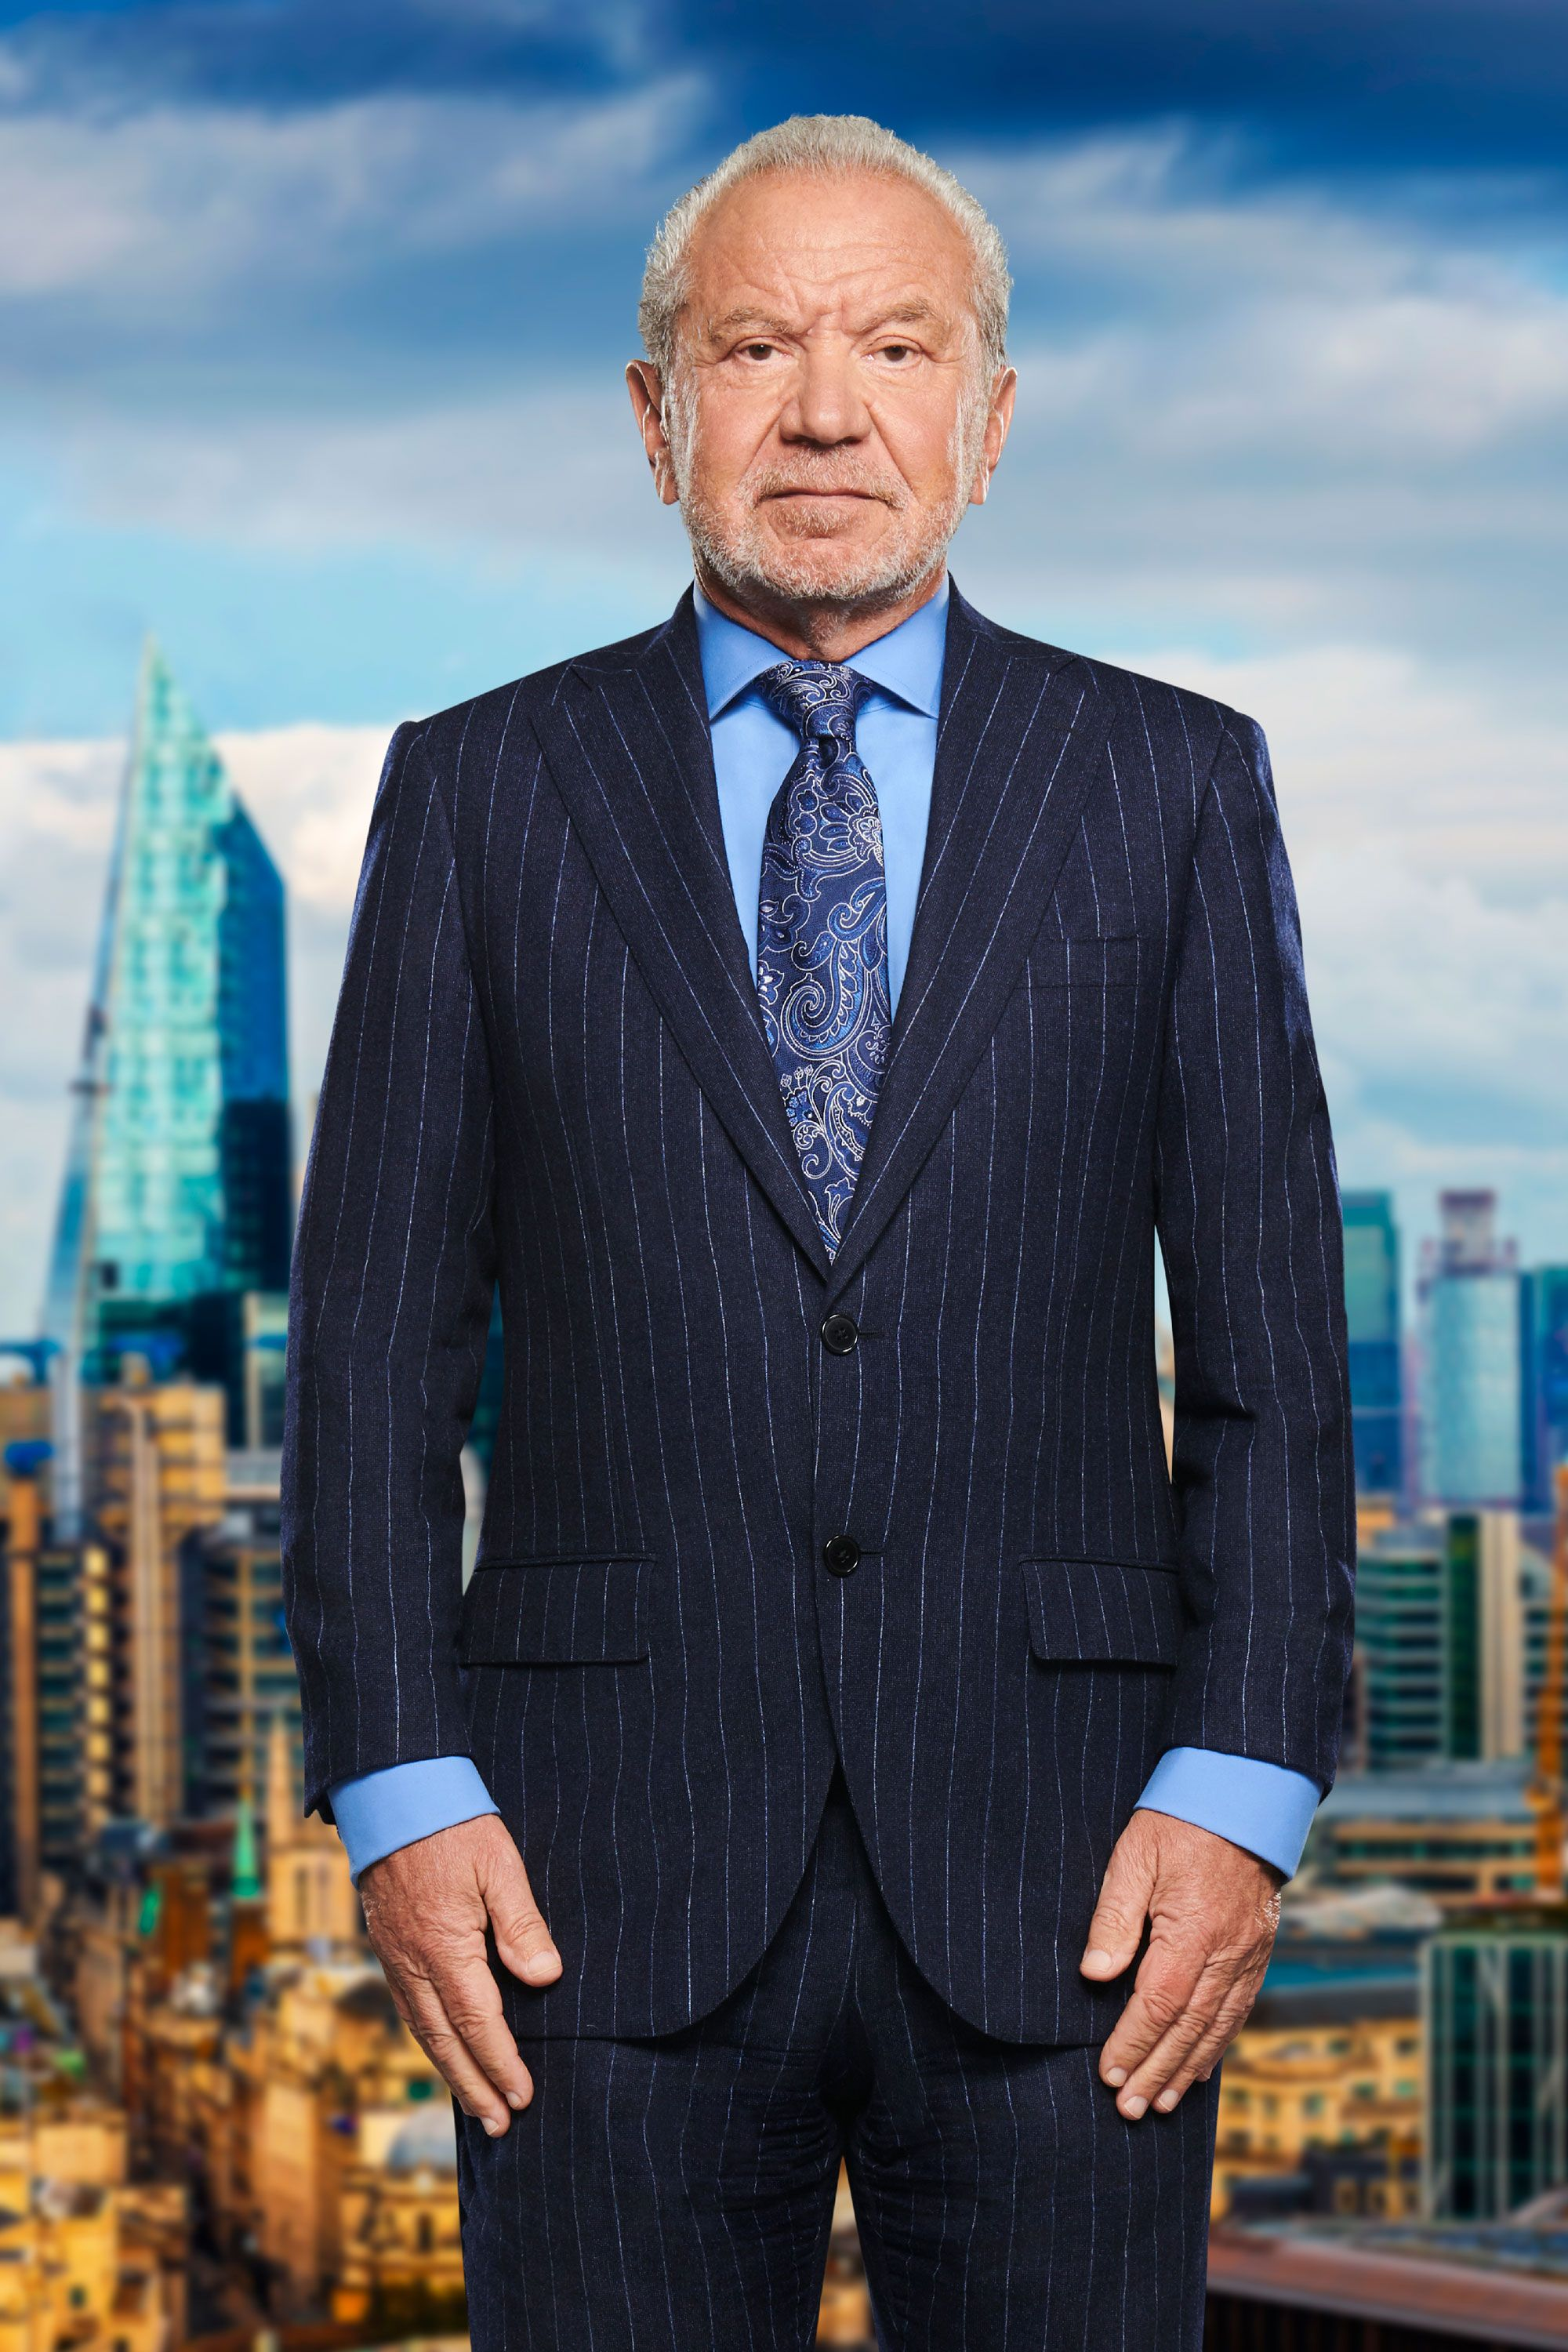 The Apprentice viewers aren't happy as seventh candidate is fired